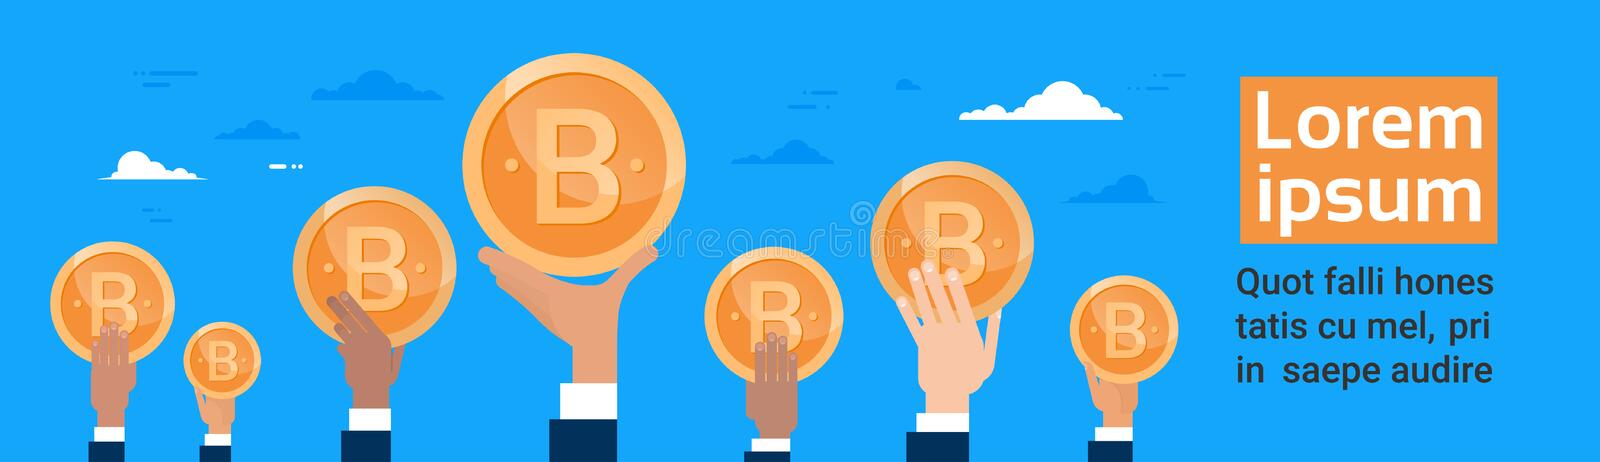 Group Of Hands Holding Bitcoin Crypto Currency Digital Or Virtual Web Money Concept Horizontal Banner royalty free illustration